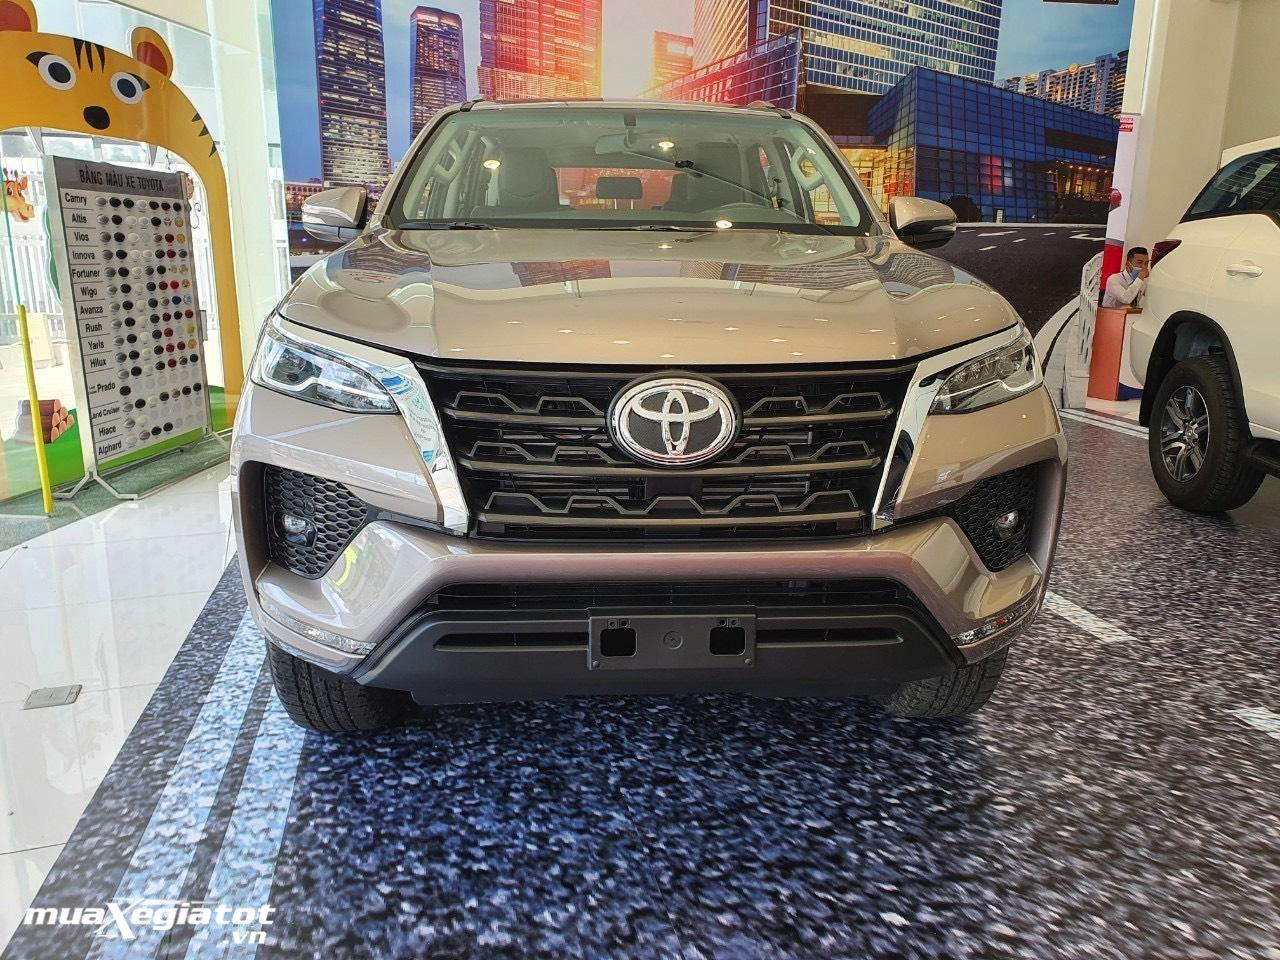 chi-tiet-xe-toyota-fortuner-4x4-2-7-at-2021-muaxegiatot-vn-7